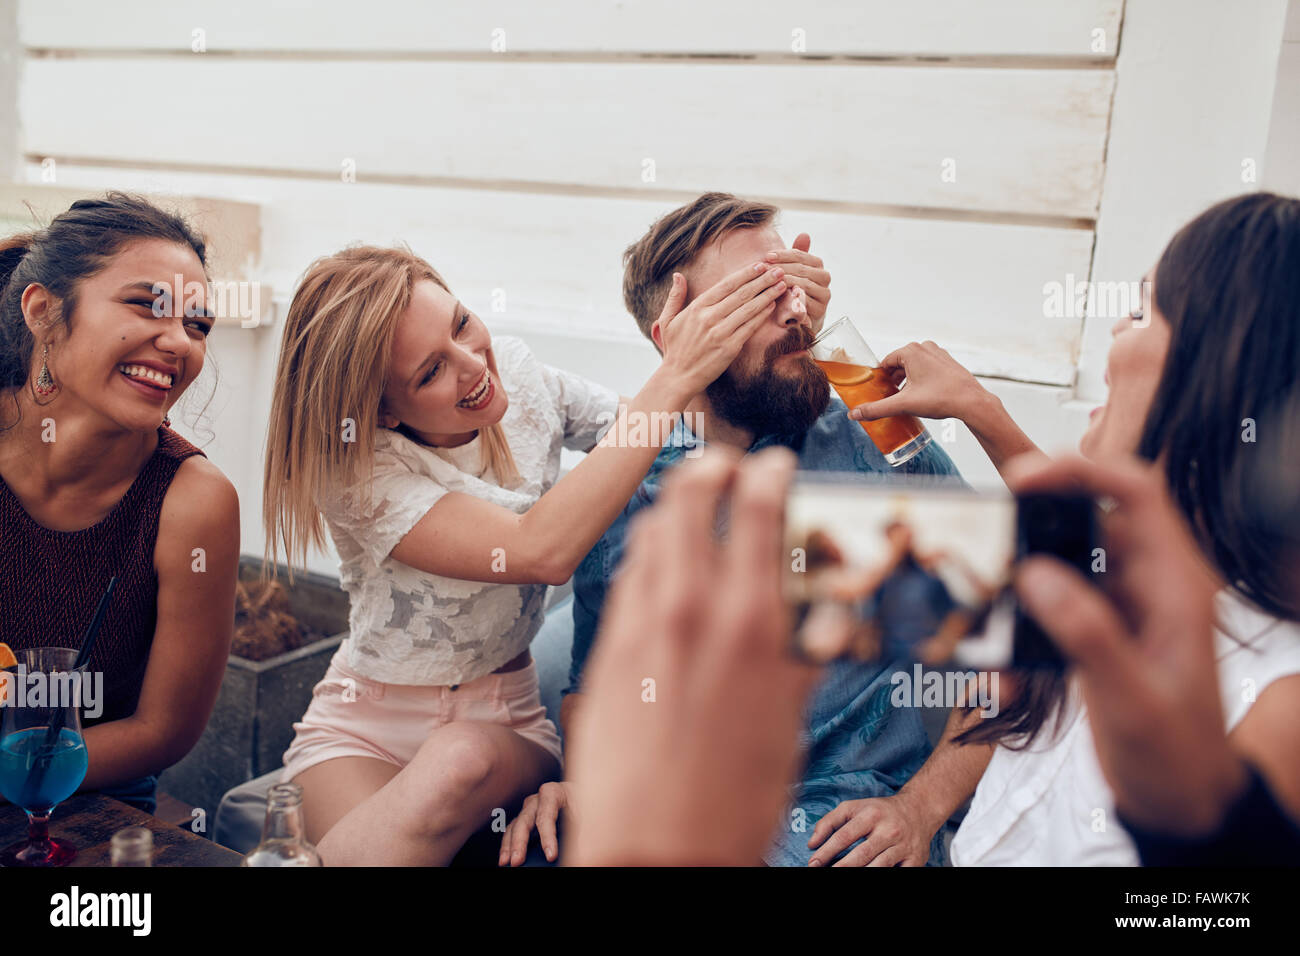 Young friends having fun at party being photographed with mobile phone. Young people sitting together enjoying party - Stock Image